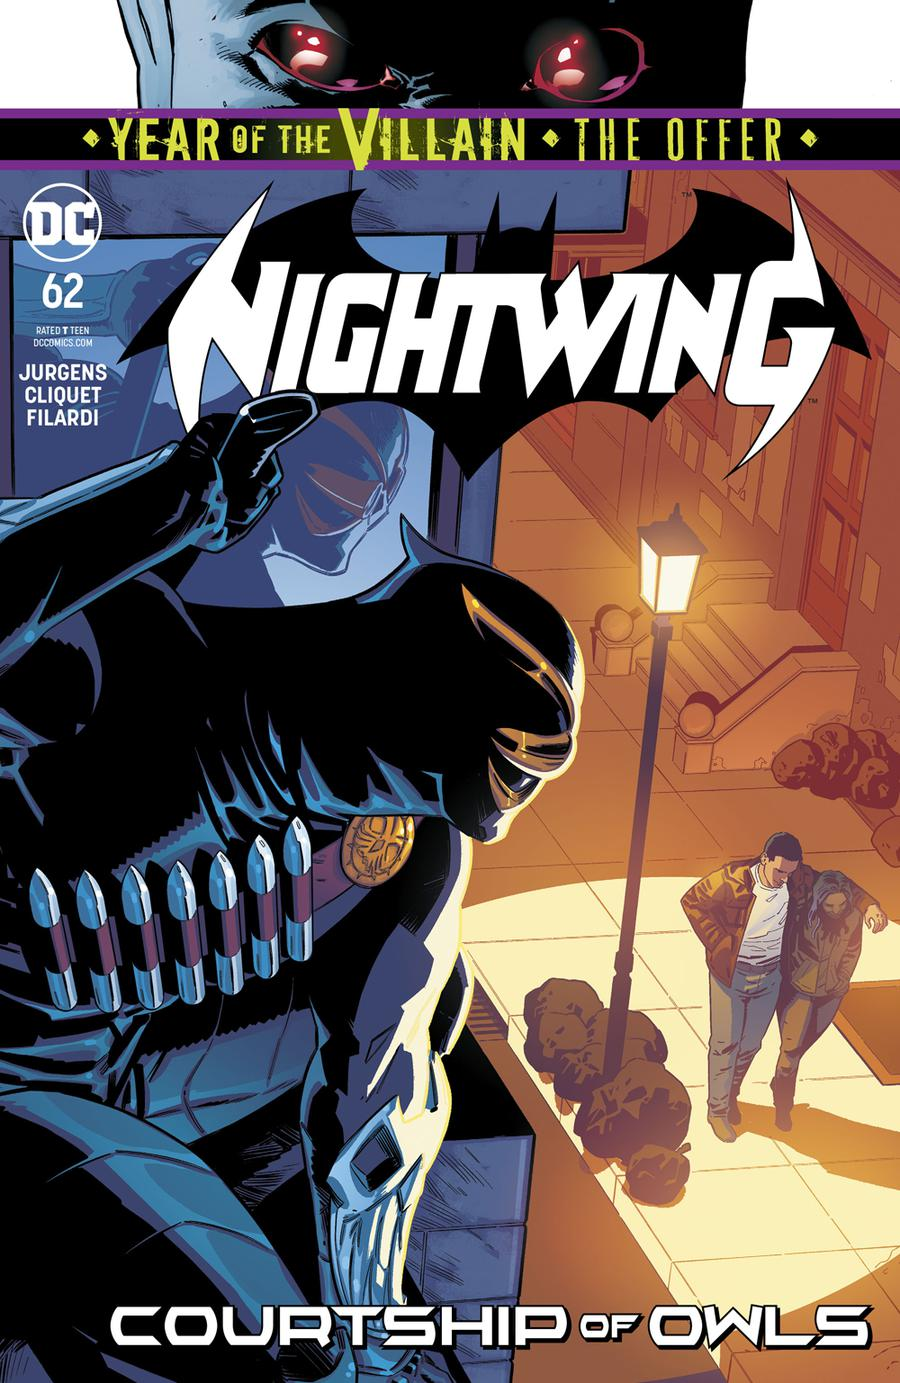 Nightwing Vol 4 #62 Cover A Regular Bruno Redondo Cover (Year Of The Villain The Offer Tie-In)